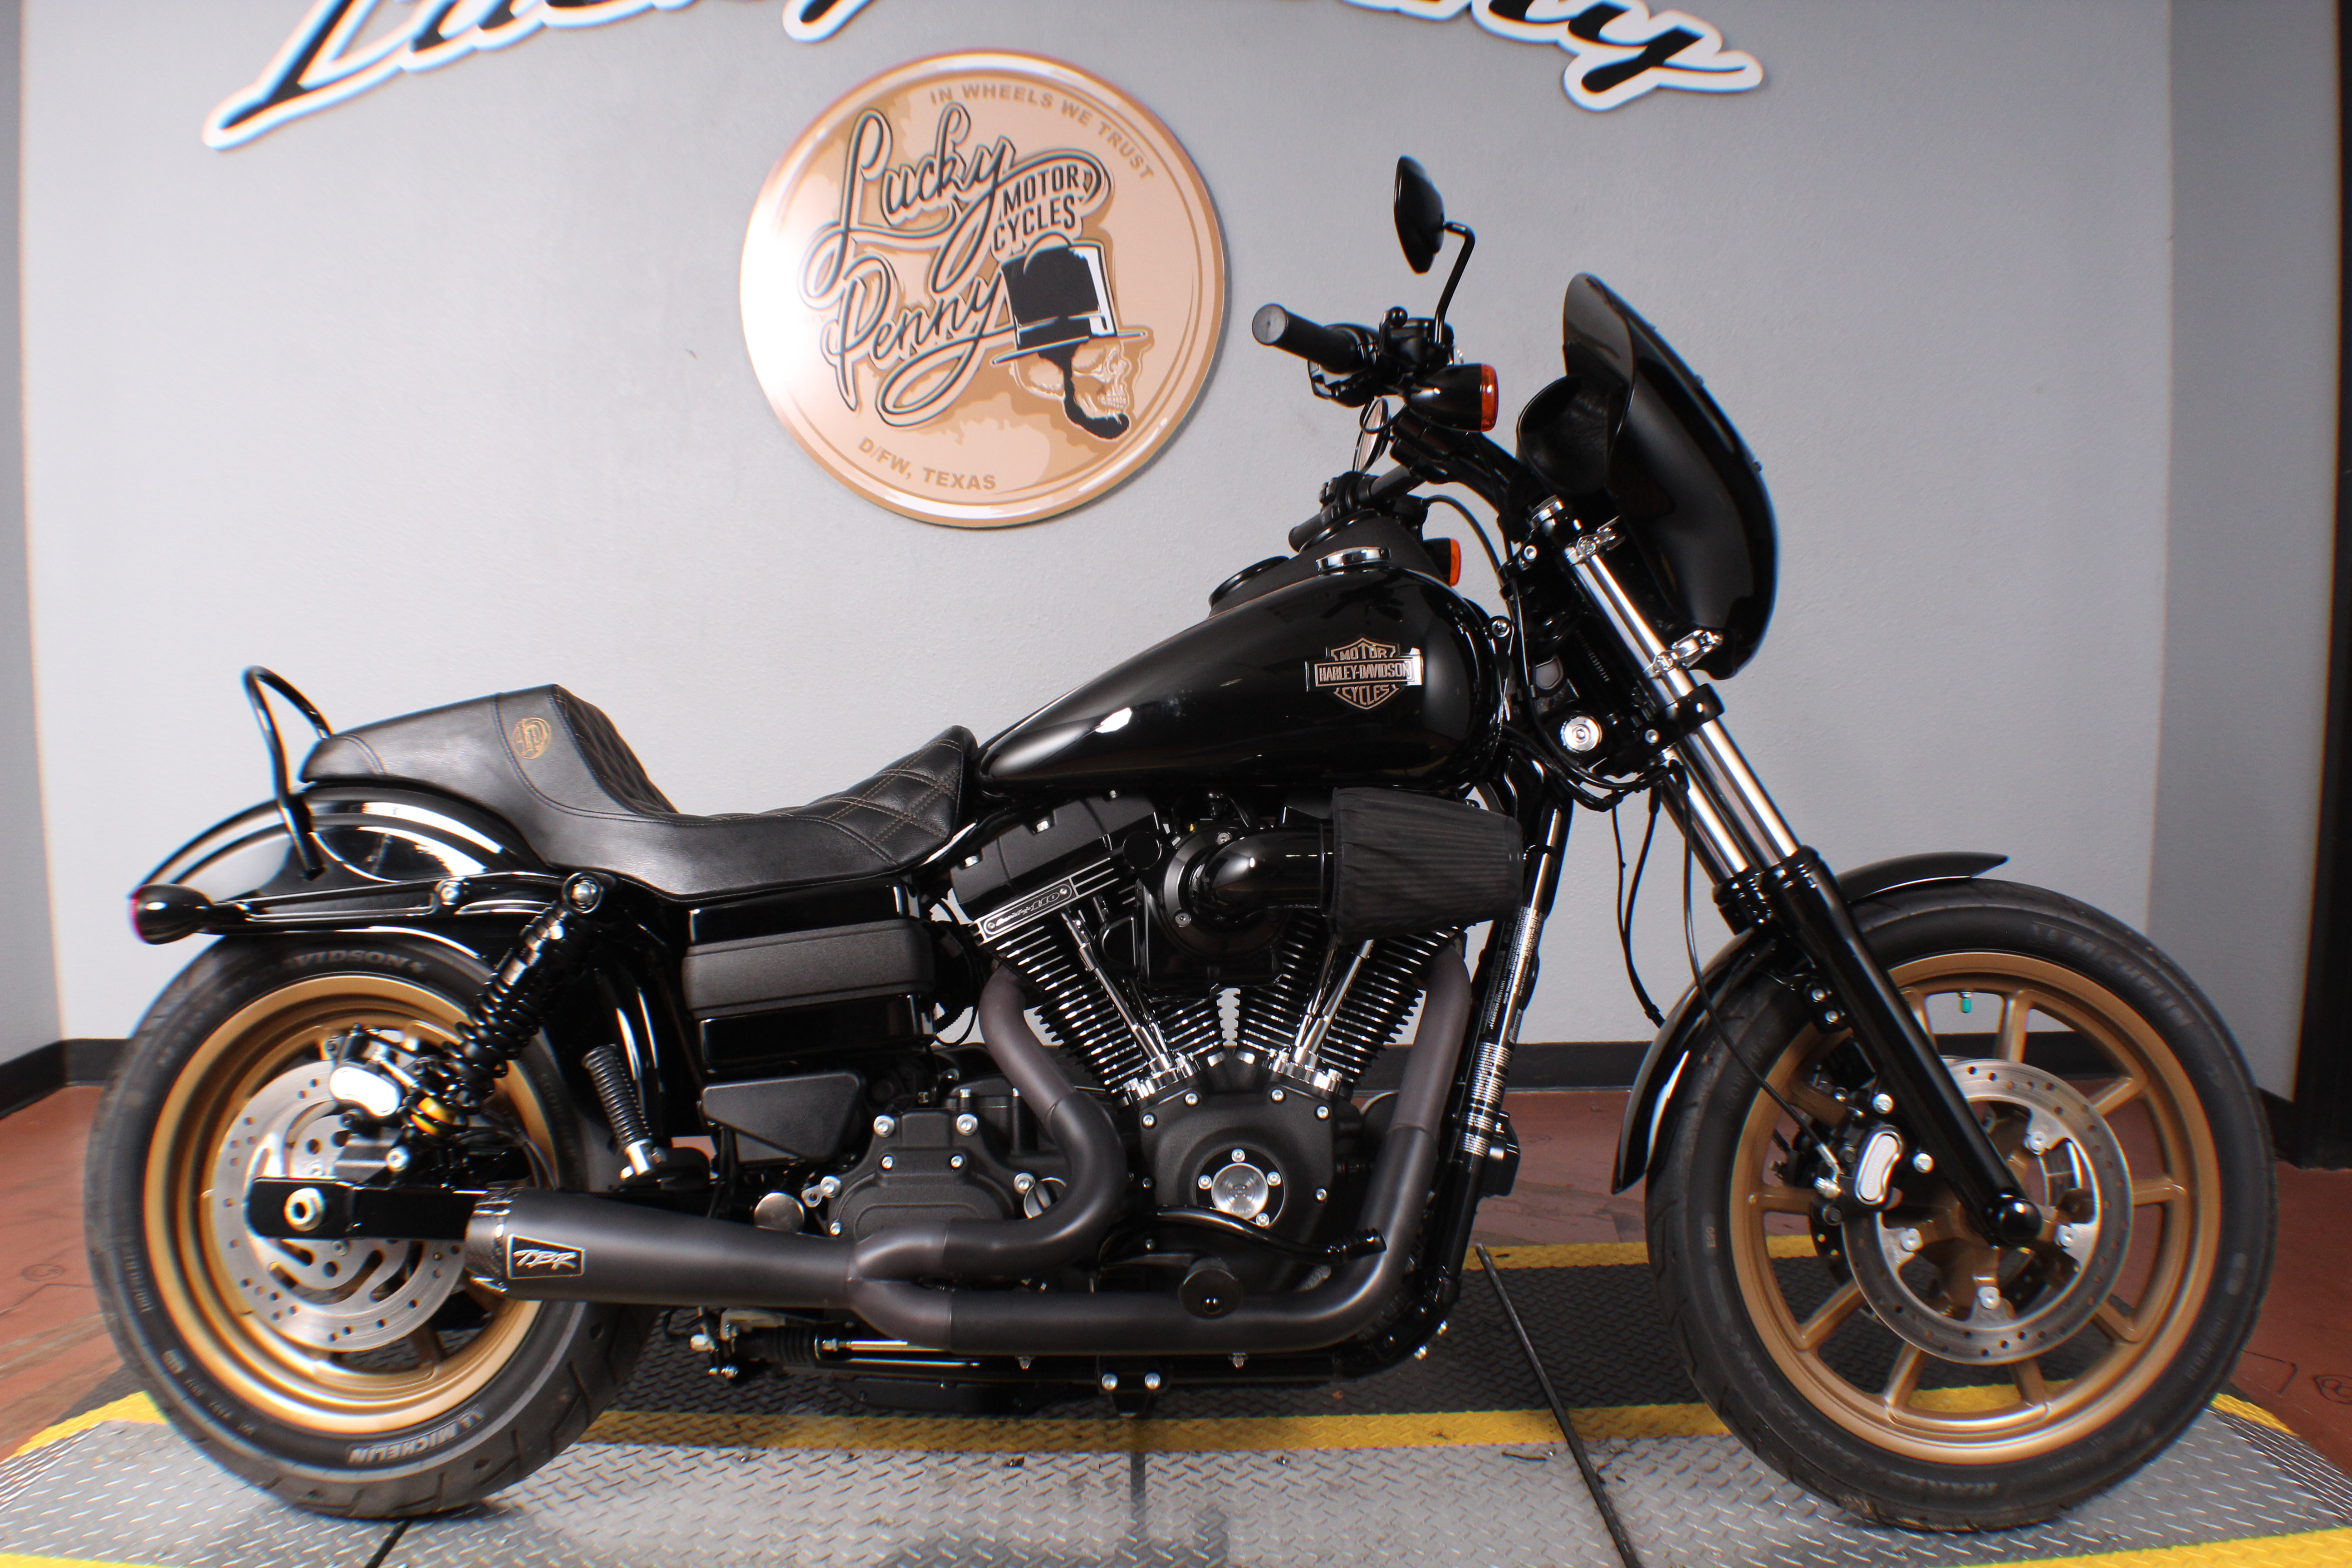 Pre-Owned 2016 Harley-Davidson FXDS Low Rider S